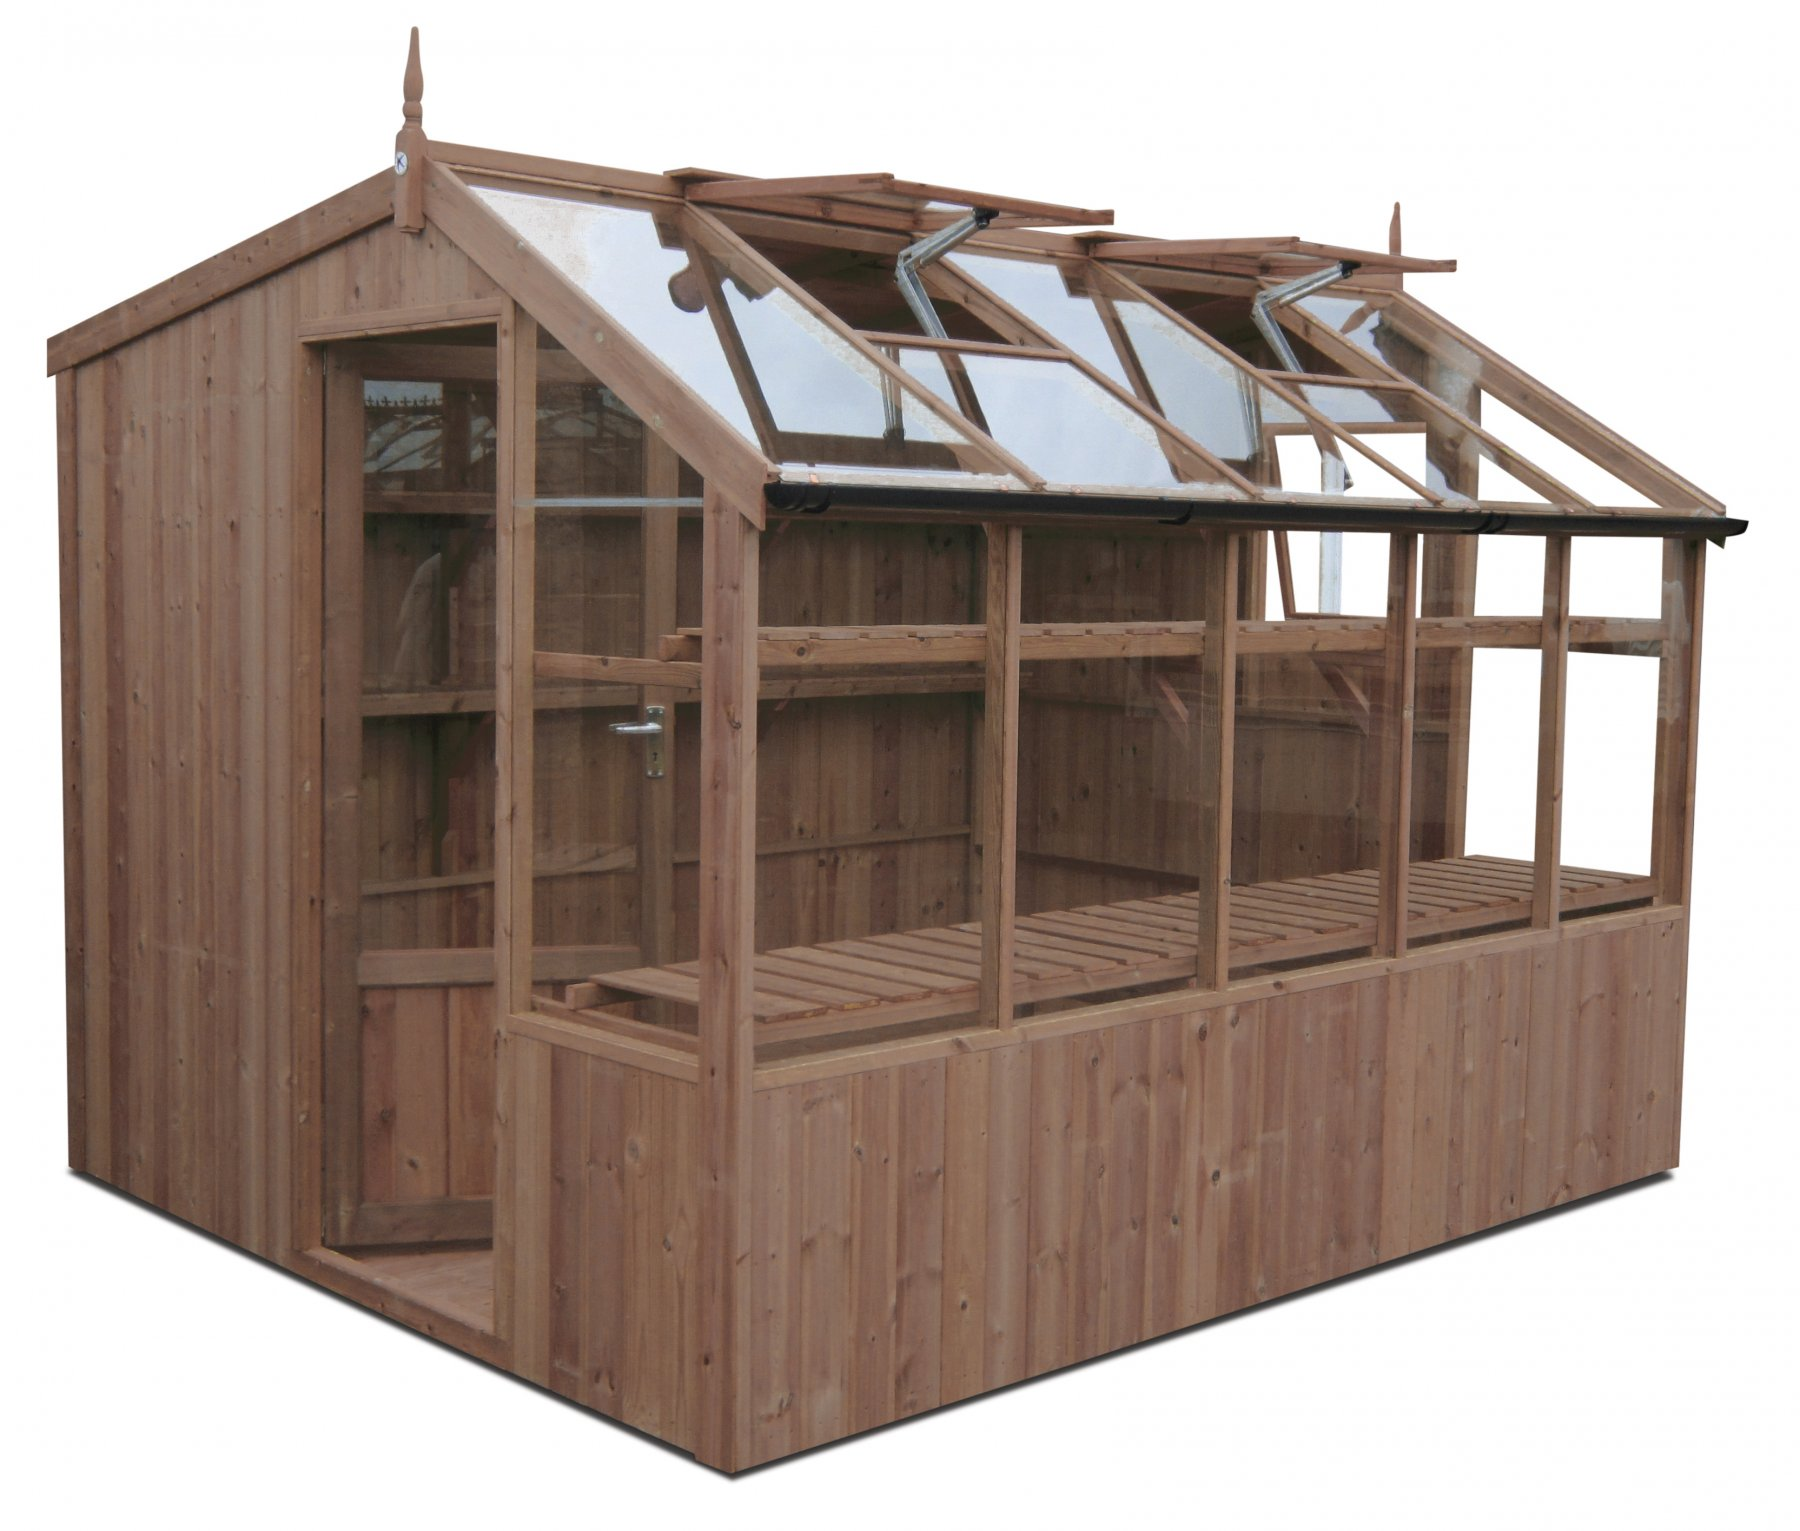 hight resolution of swallow rook thermowood greenhouse 8ft8 wide 2660mm x 12ft7 long 3840mm